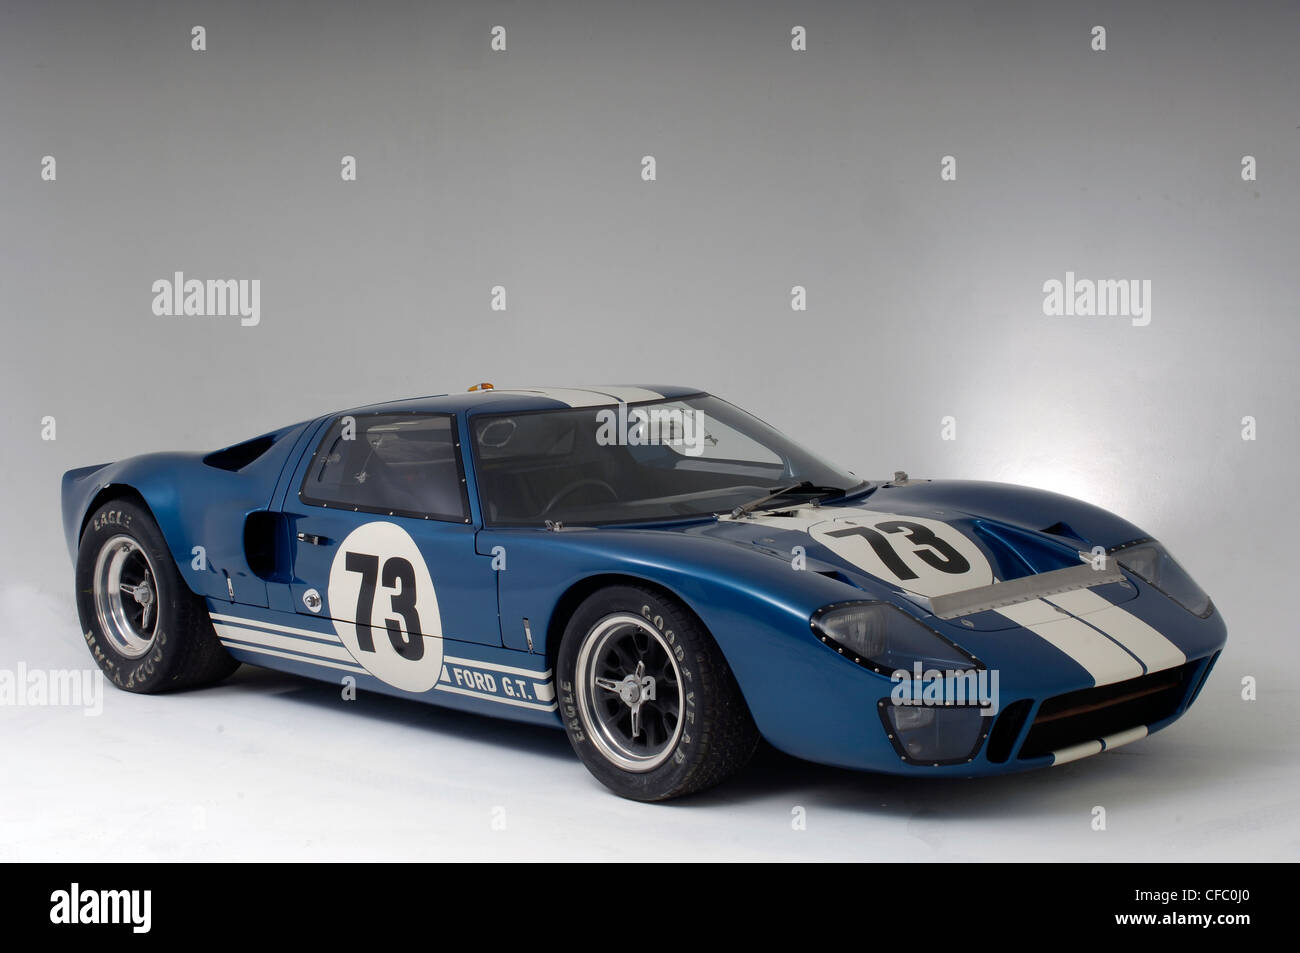 Ford Gt Daytona Prototype Stock Image